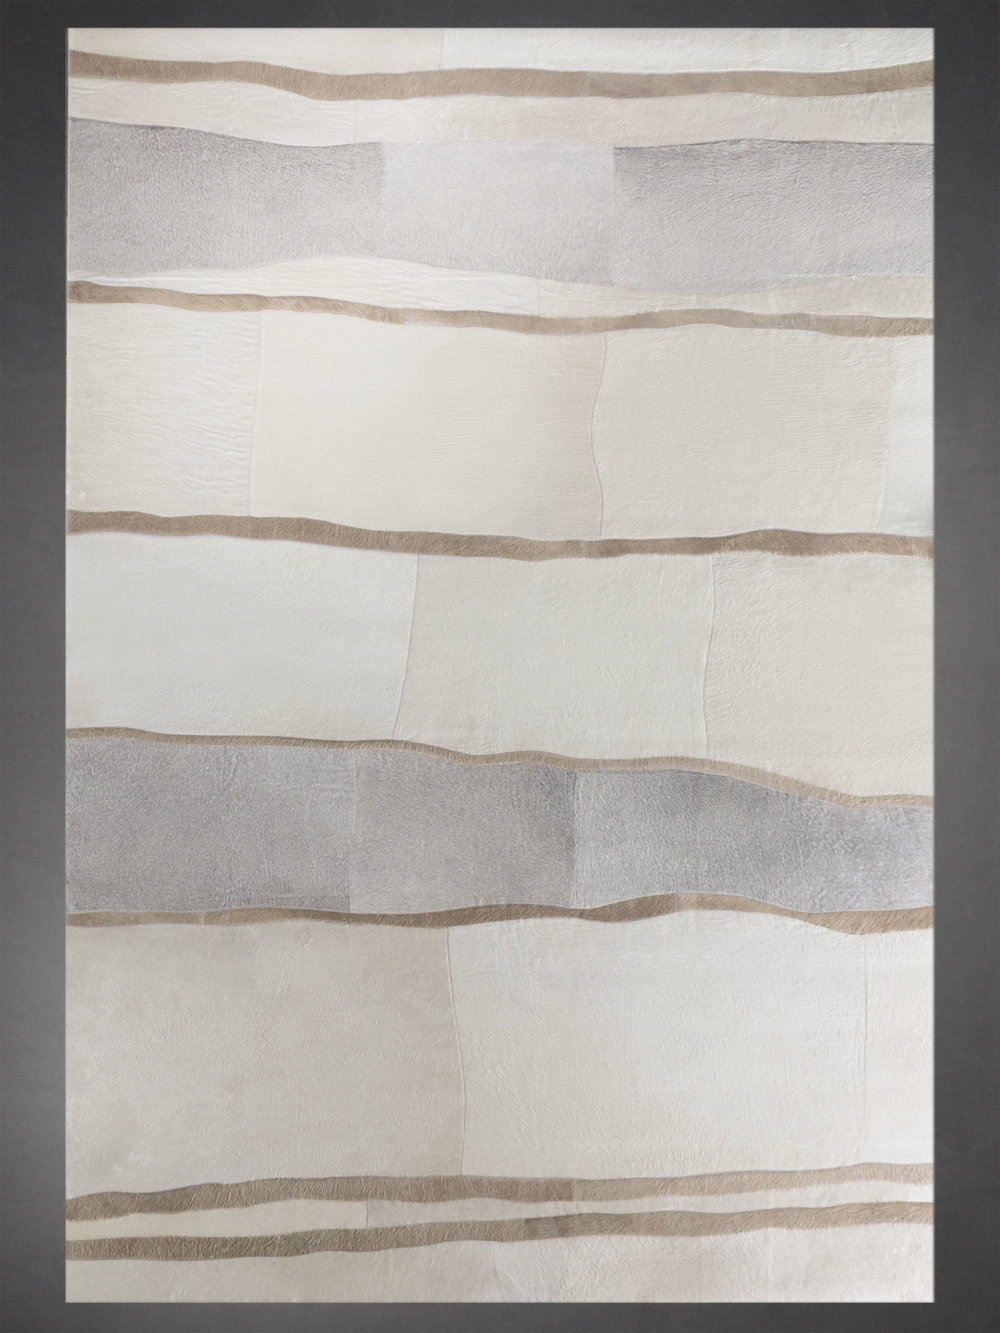 Contemporary designed fur rug in a abstract pattern in white, gray and taupe.